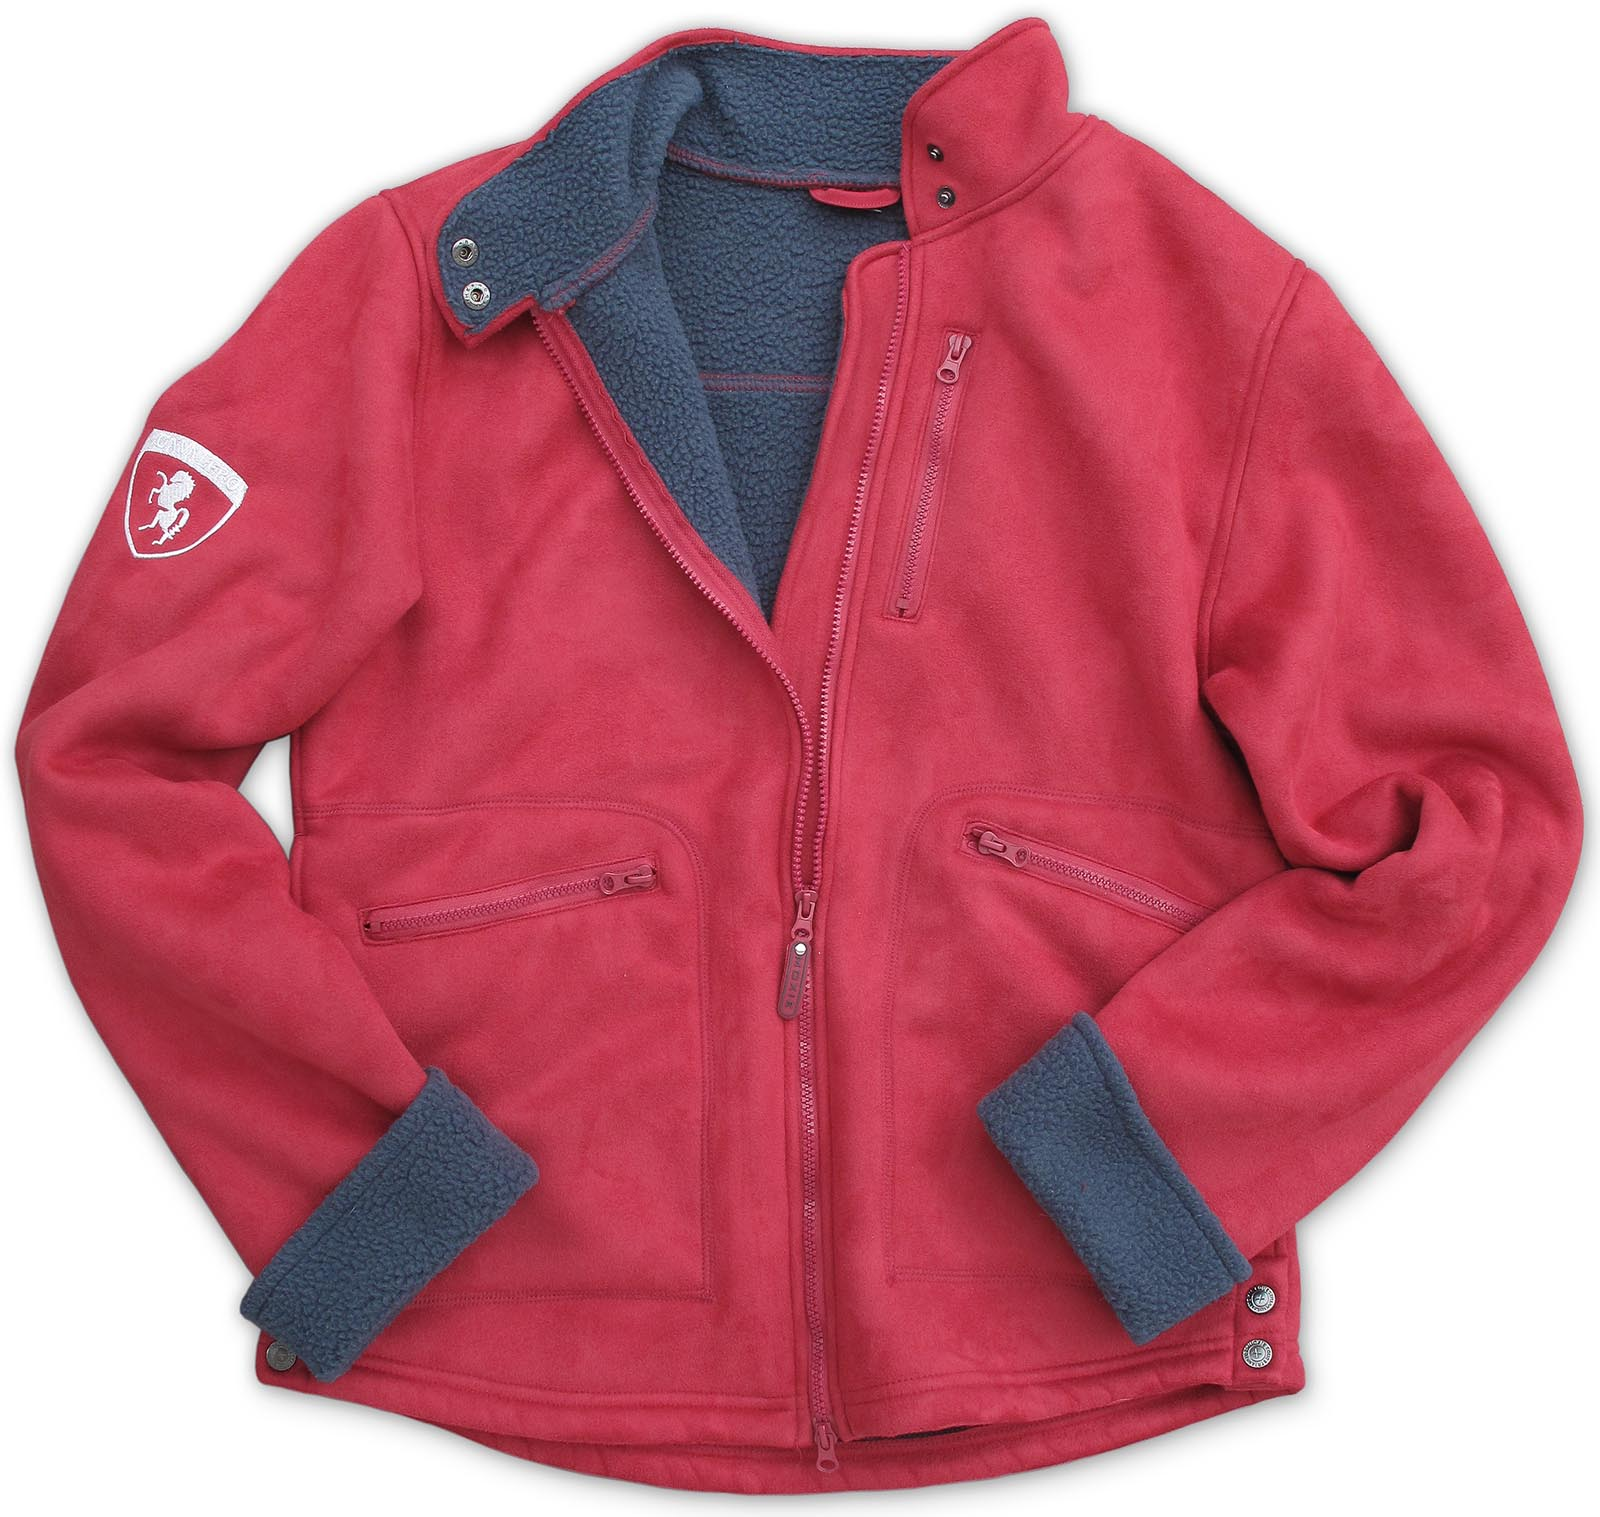 SALE $10.00 OFF! Ladies Fleece Lined Suede Stable Jacket-www ...